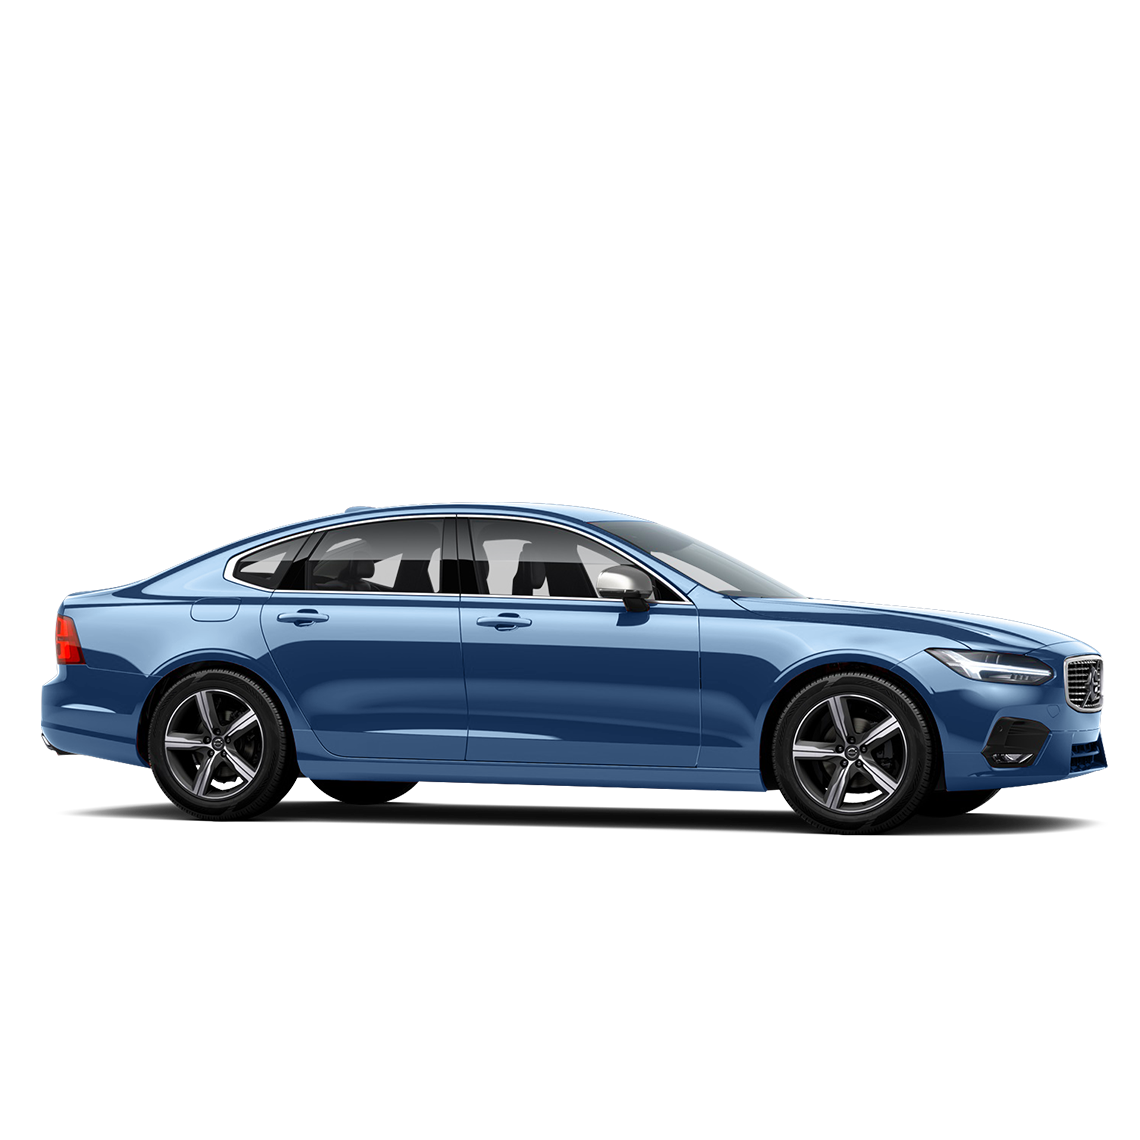 Der Volvo S90 ModelYear 17 Bursting Blue R-Design